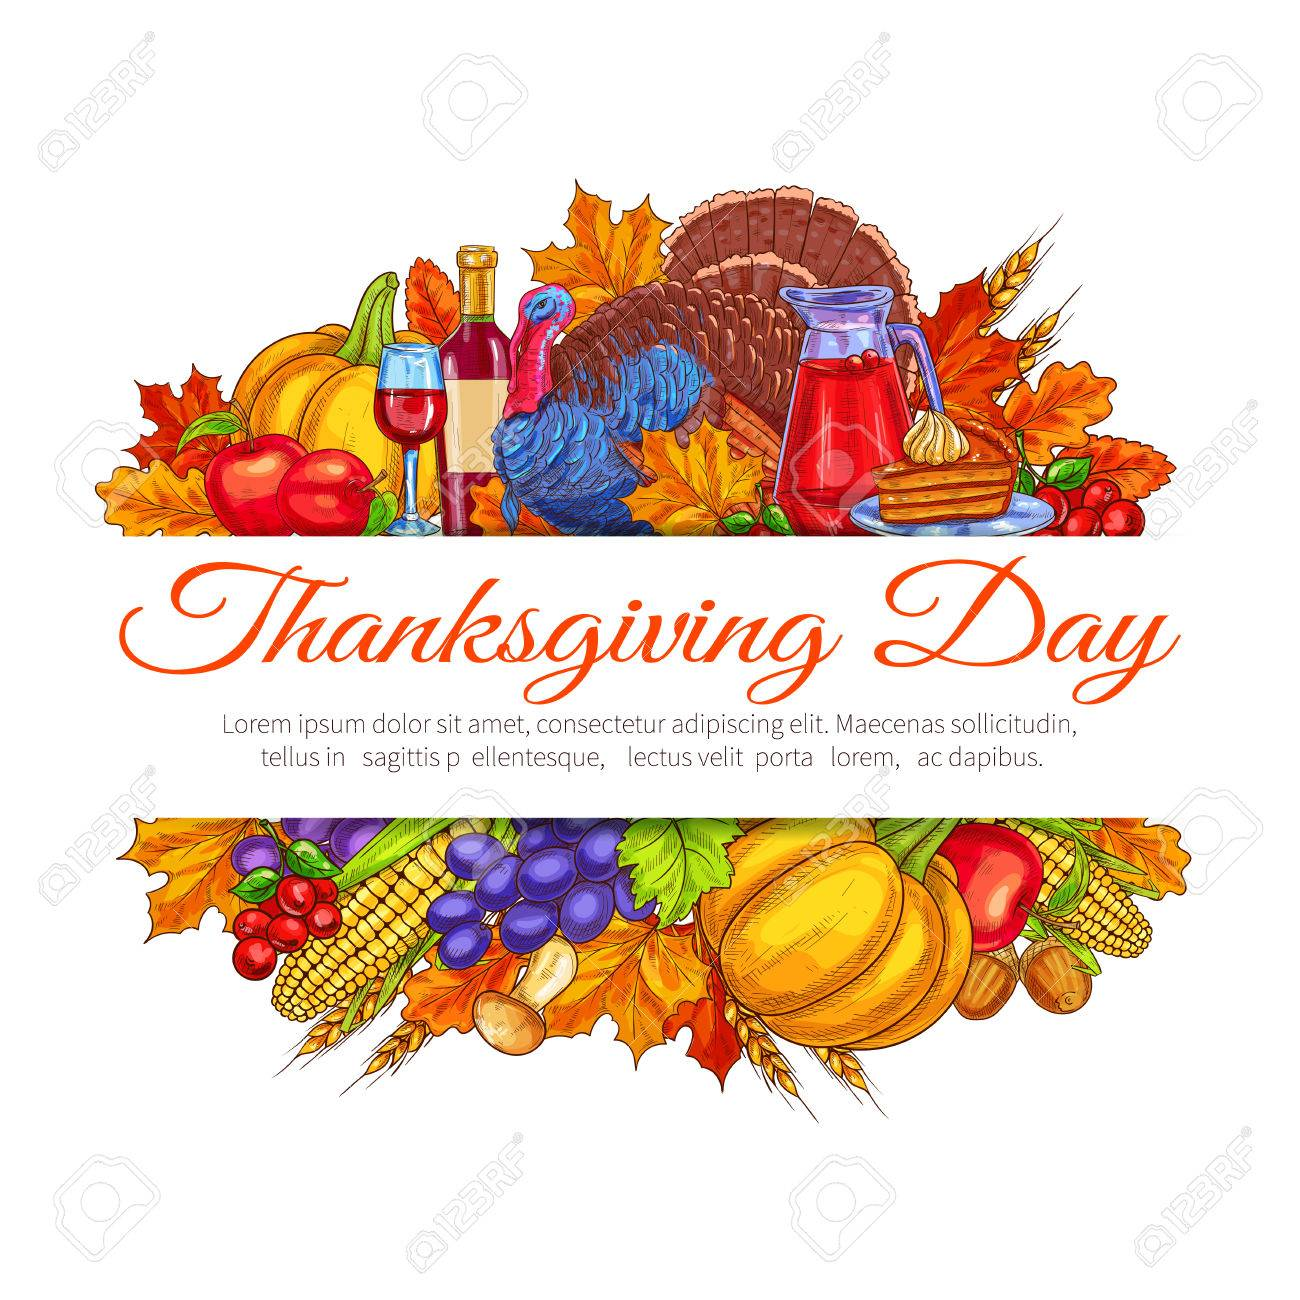 Thanksgiving Day Greeting Card Decoration November Traditional